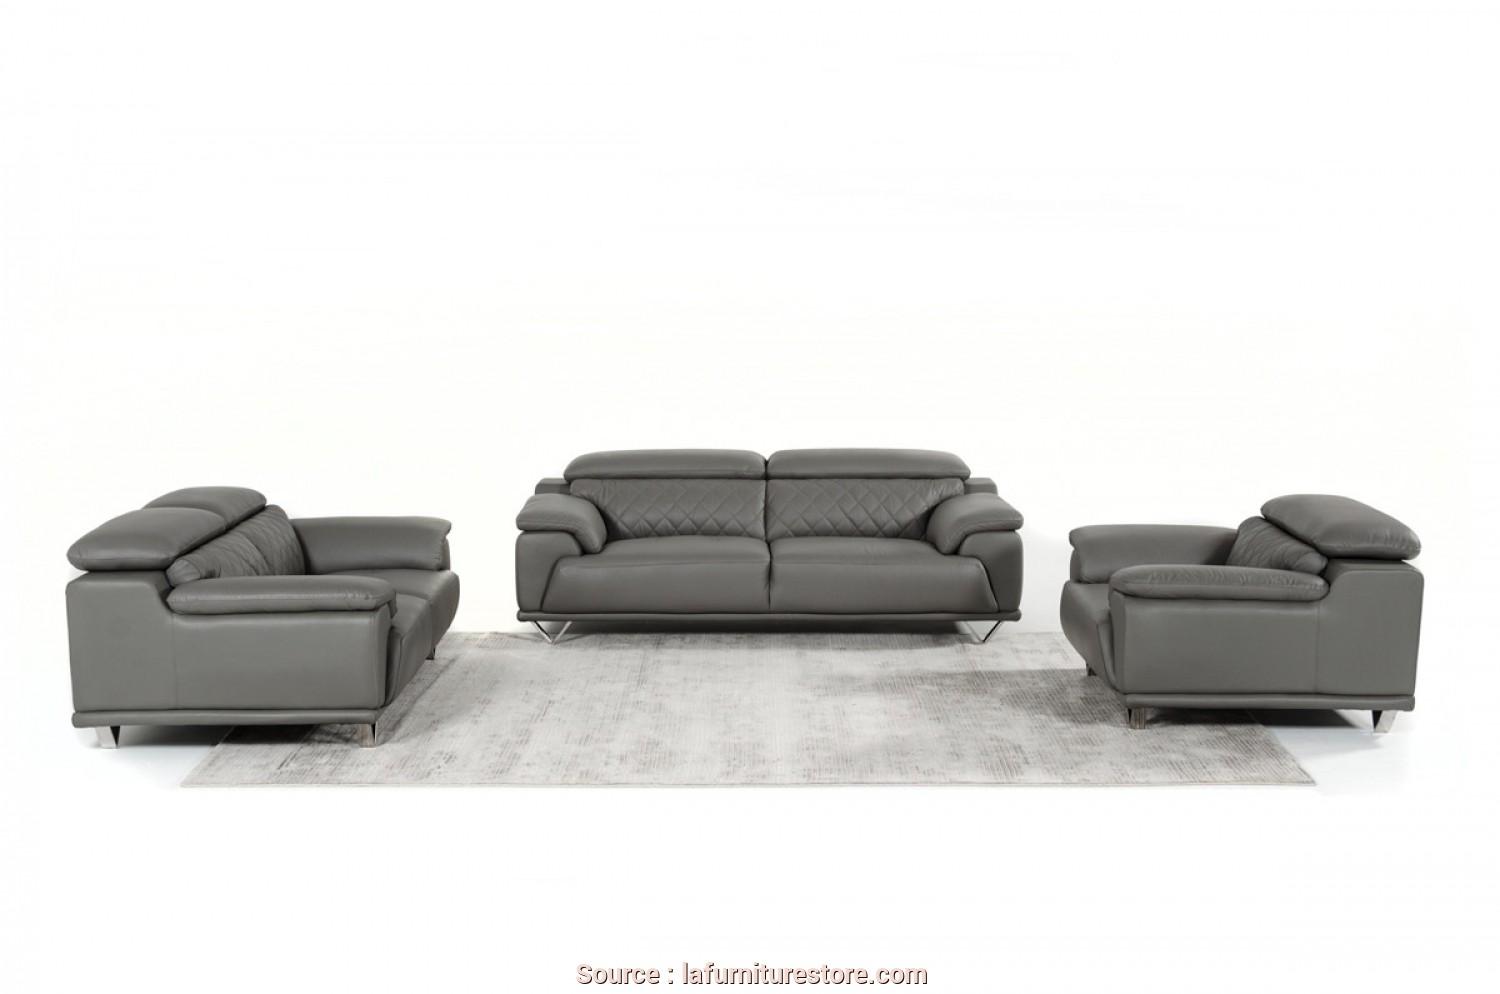 Divani Dondi Vicenza, Casuale Divani Casa Wolford Modern Grey Leather Sofa Set